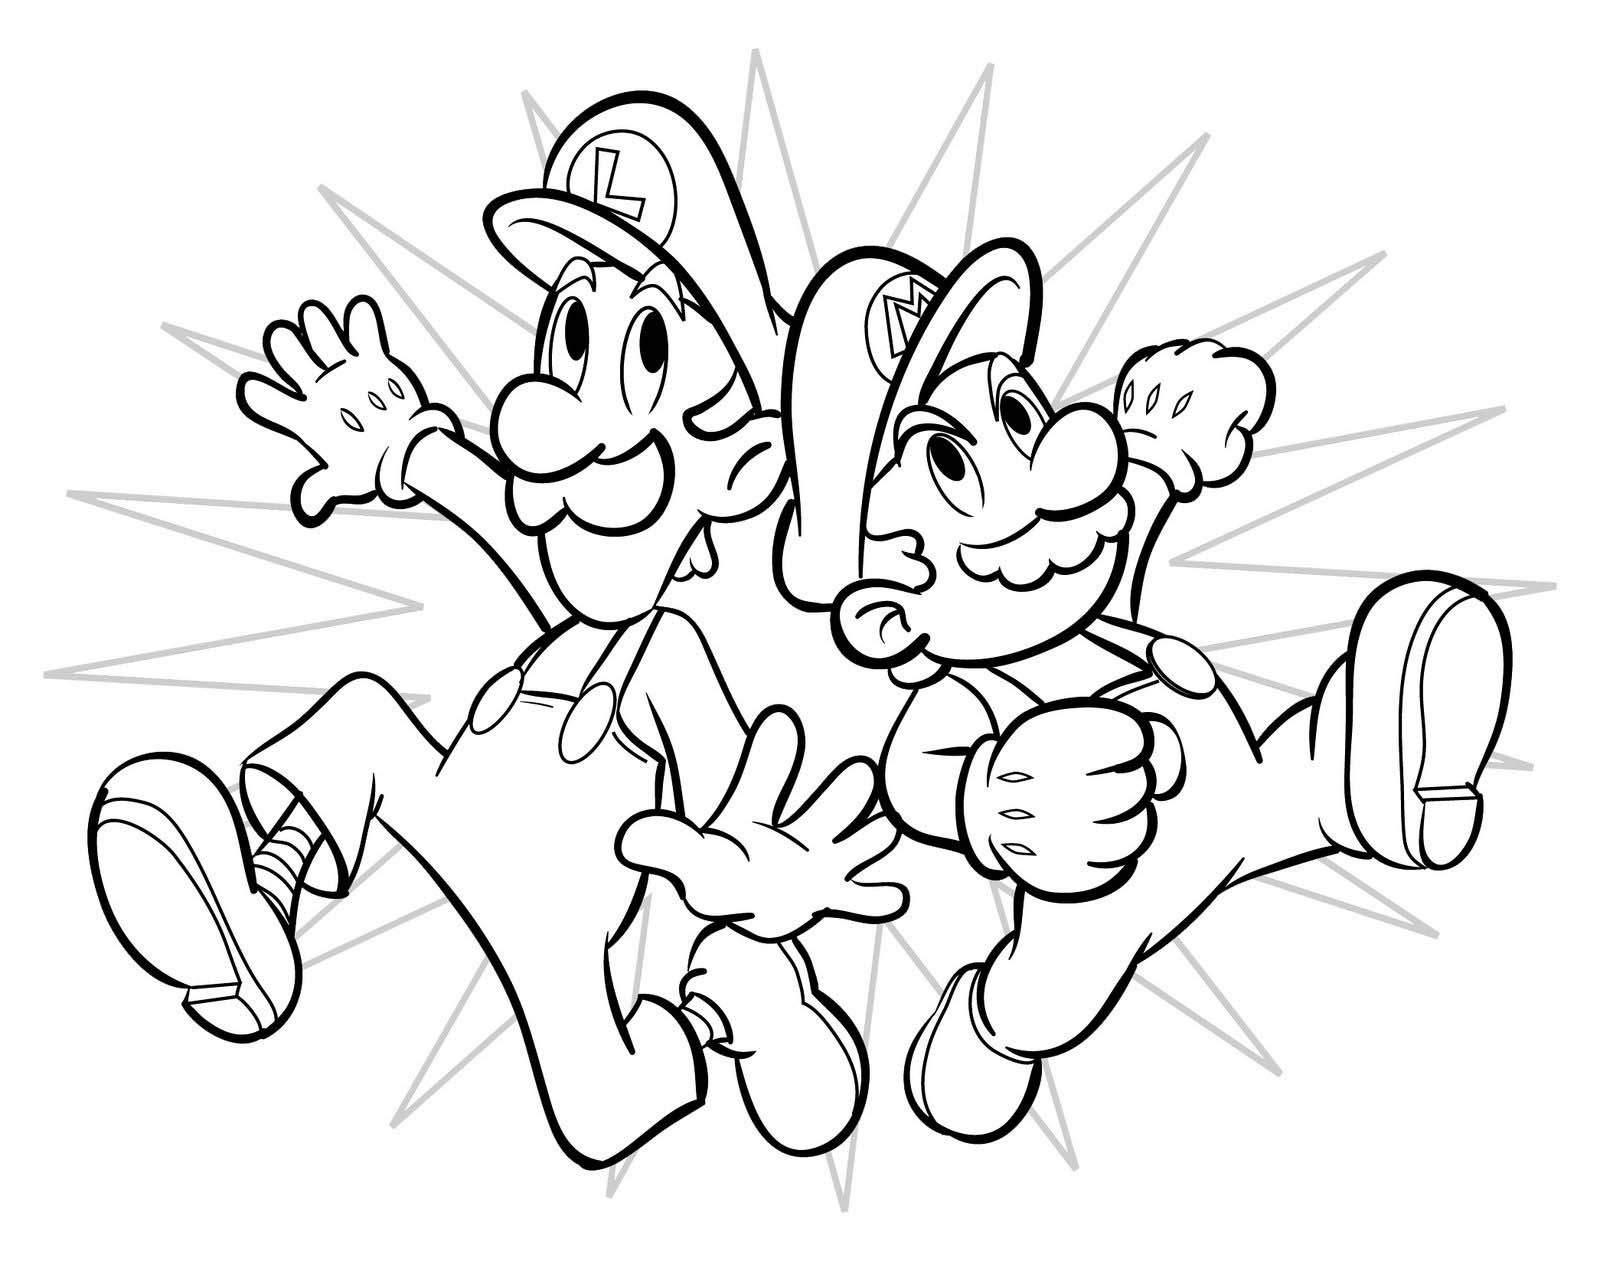 Pagees To Coloring Pages | Free Printable Mario Coloring Pages For Kids